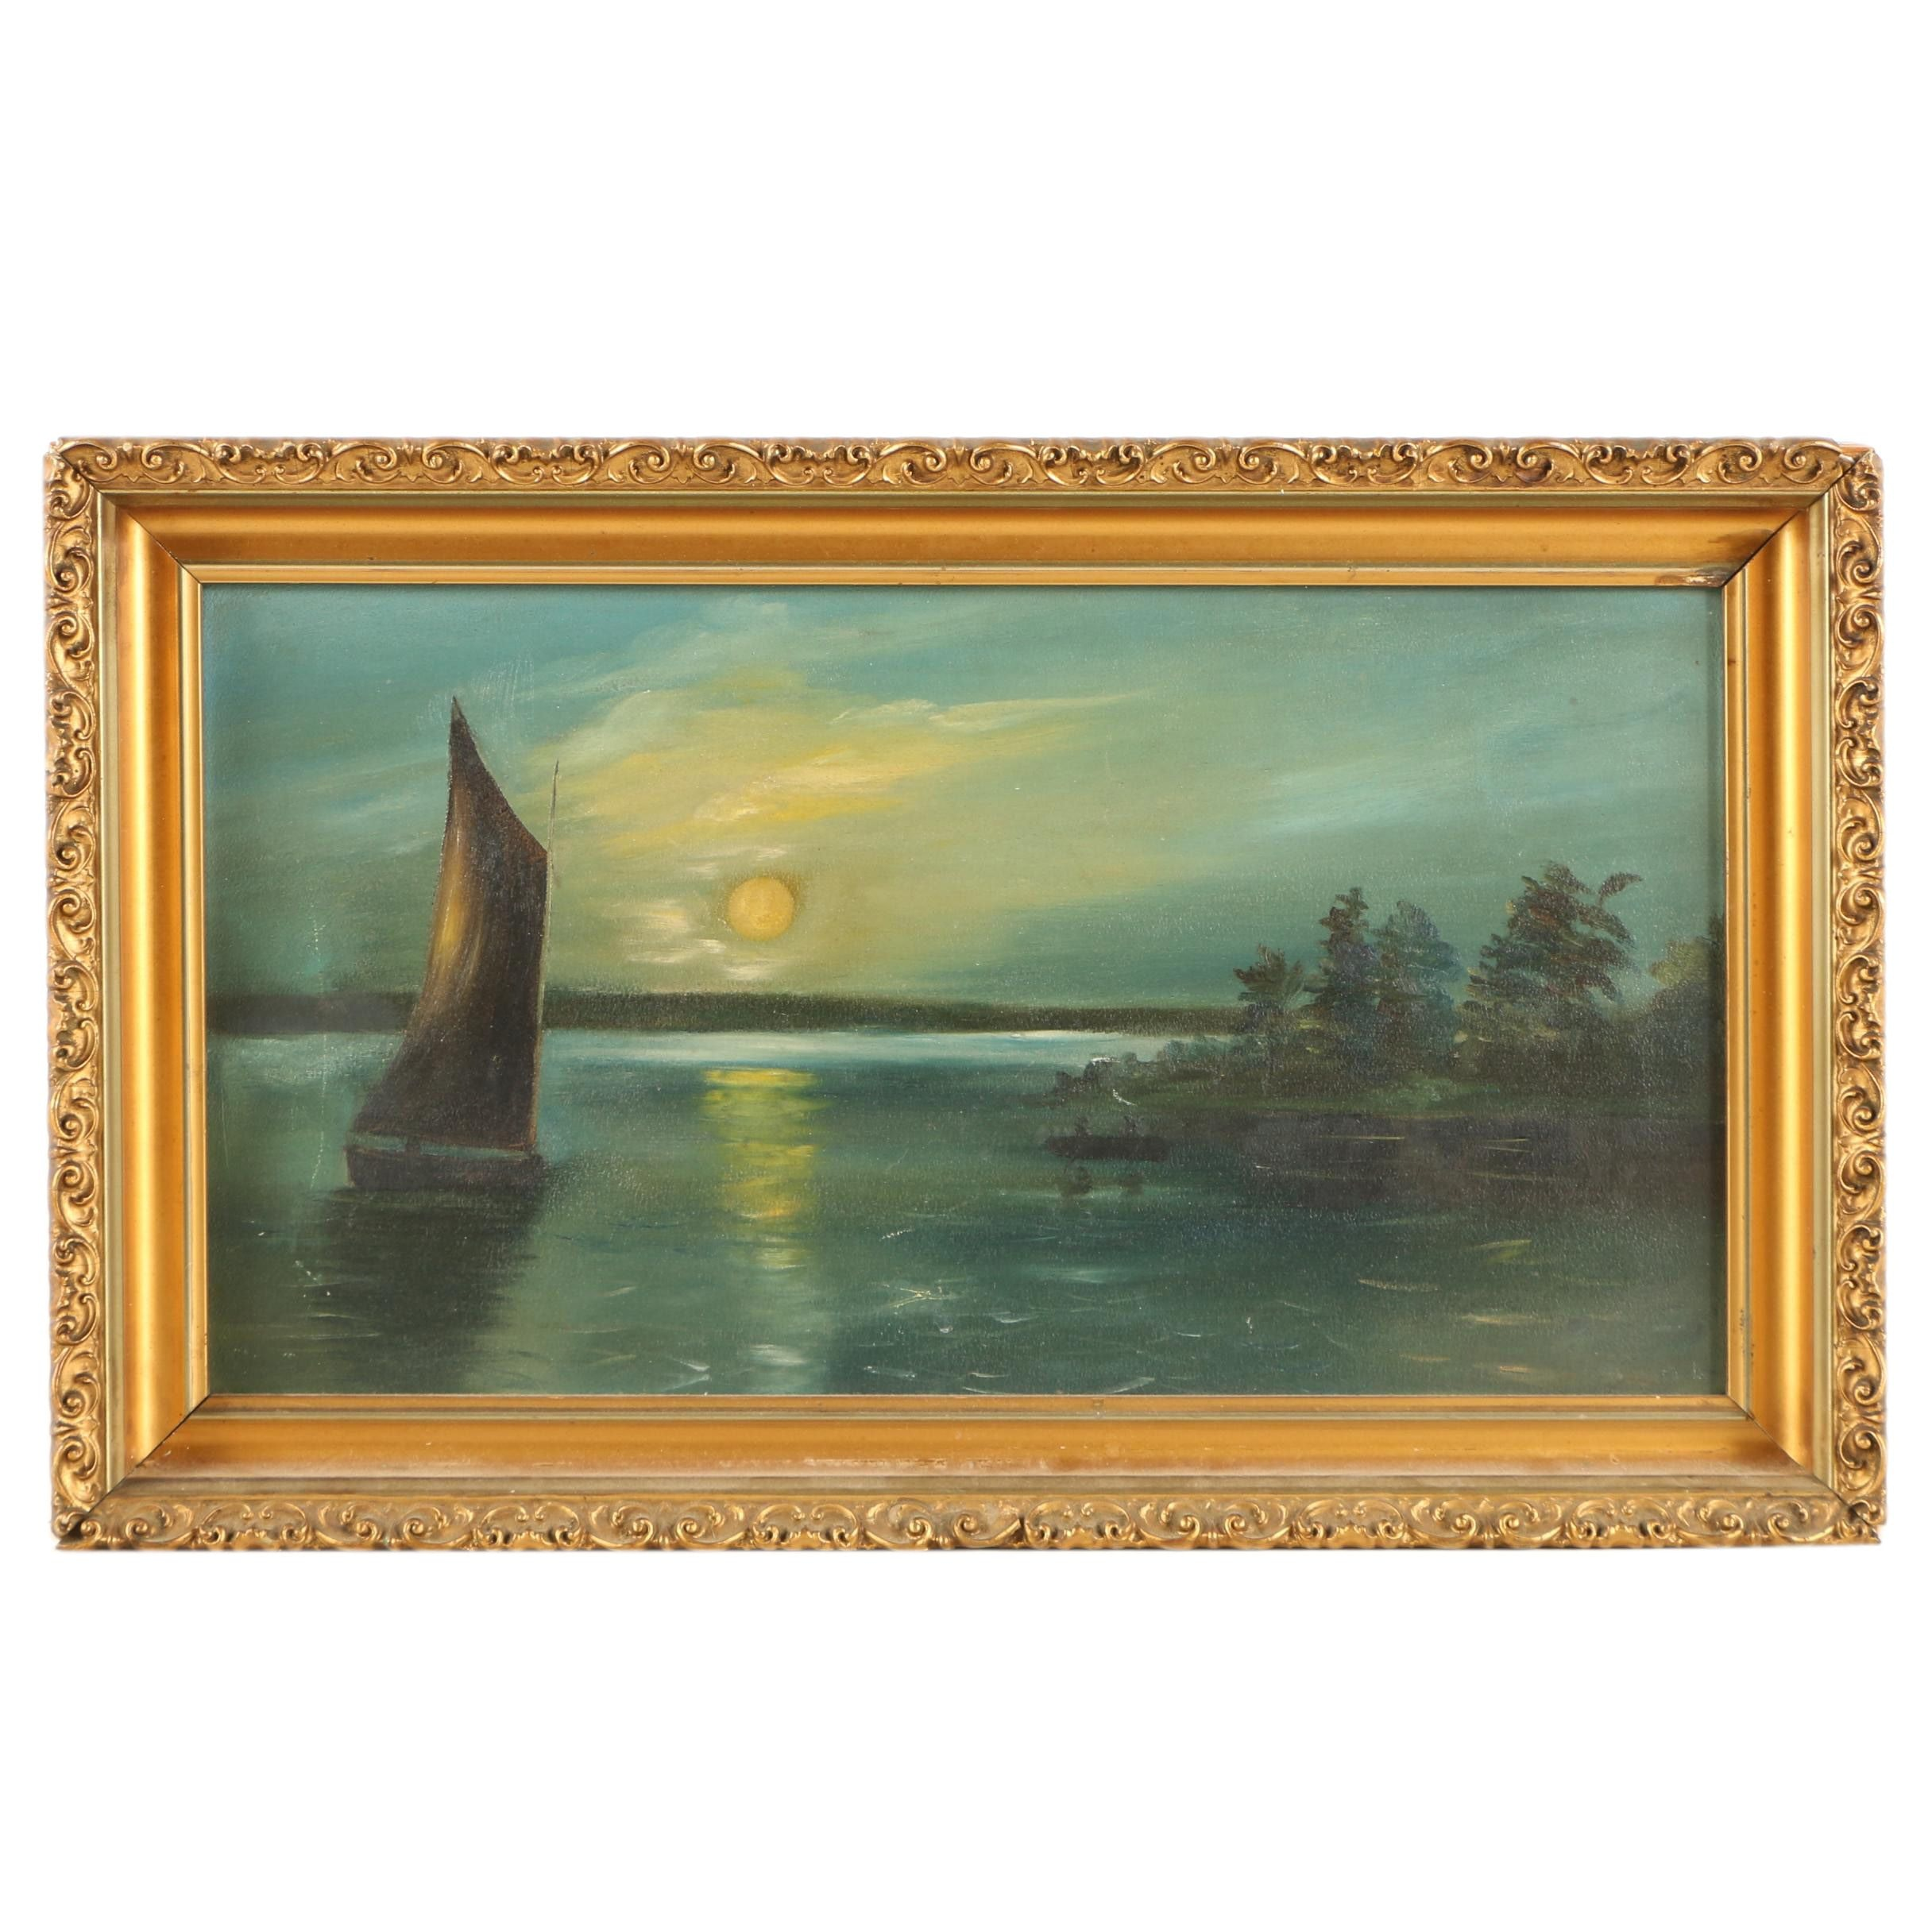 Oil Painting of a Landscape at Night